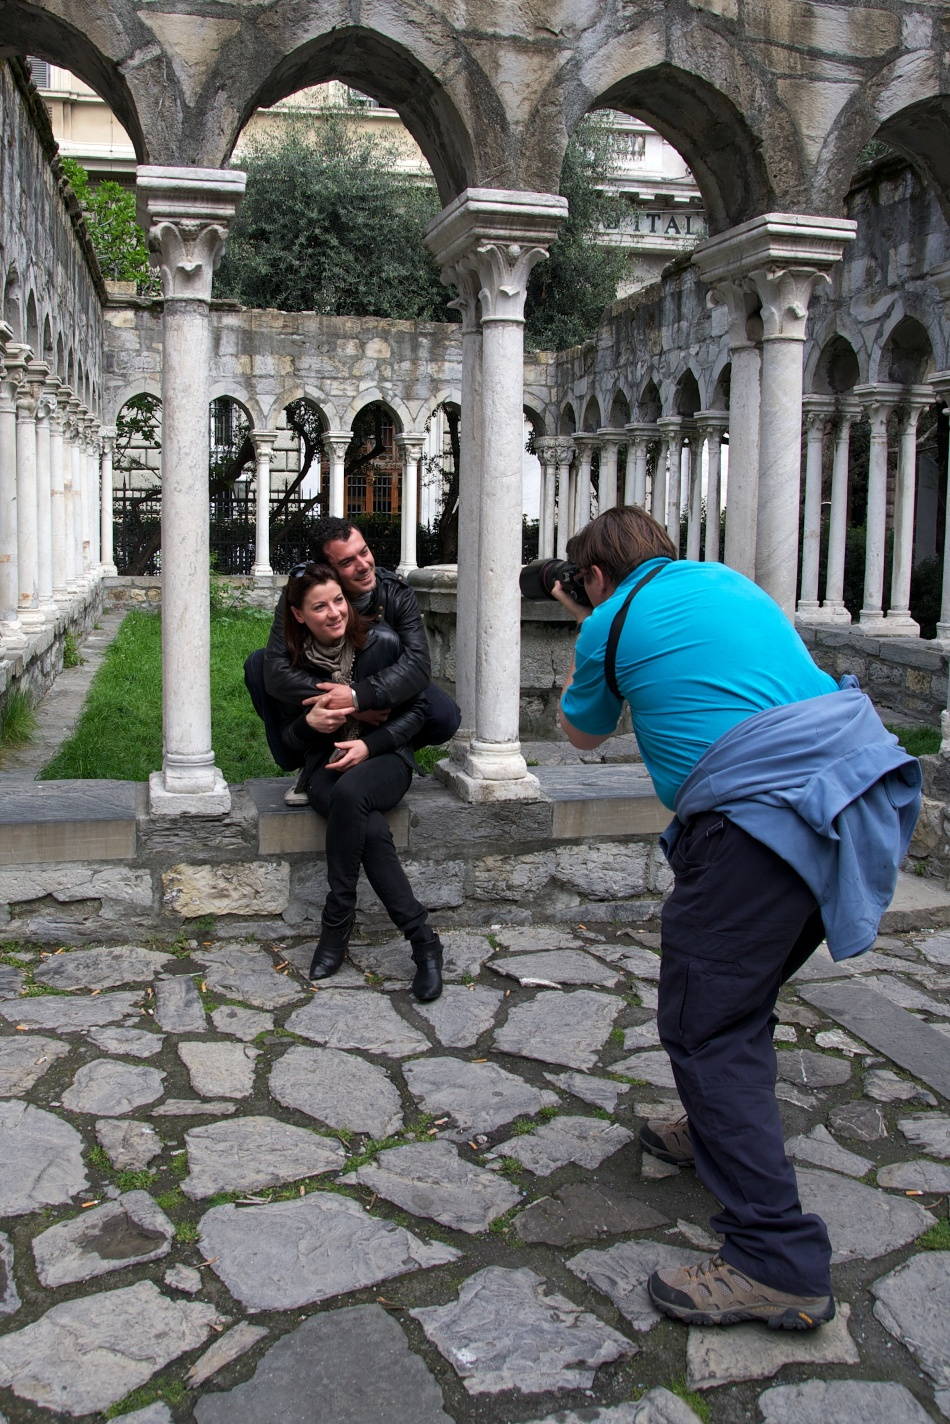 Photographer photographing a young couple in Genoa, Italy